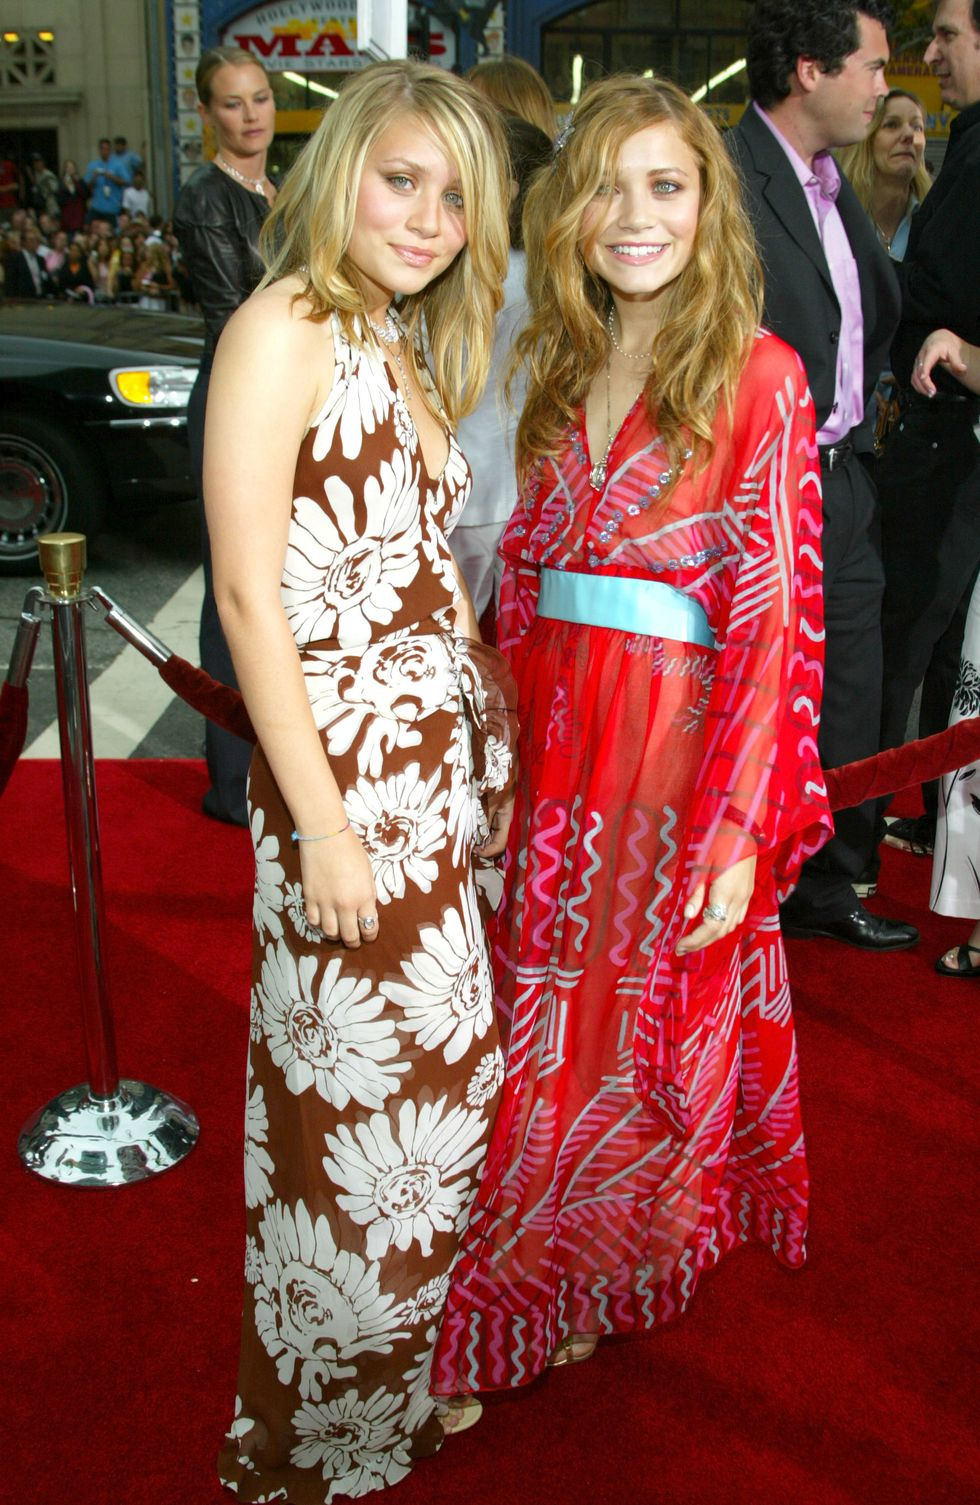 June 18, 2003 At the premiere for Charlie's Angels: Full Throttle , Mary-Kate wore a kimono-inspired maxi dress, while Ashley chose a daisy printed halter gown.